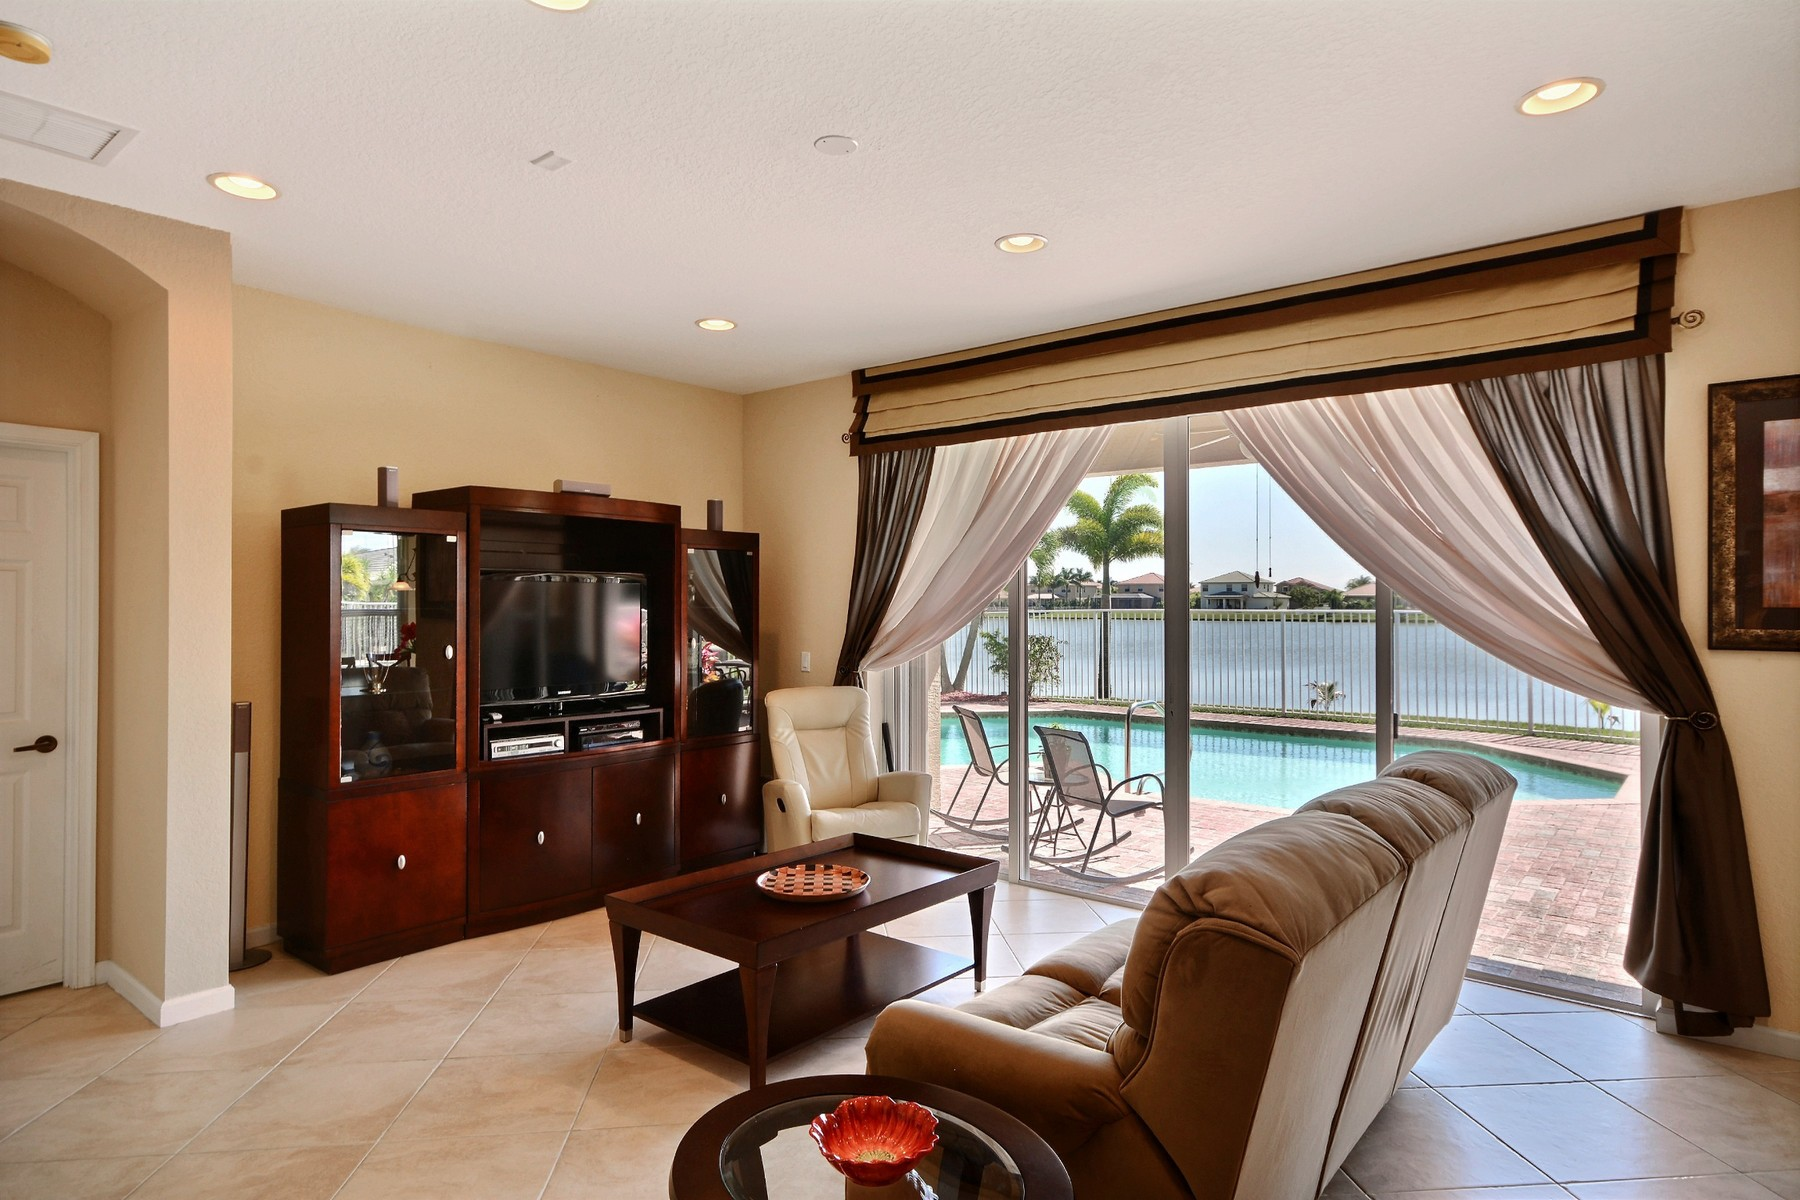 Single Family Home for Sale at Gorgeous lakefront Pool Home in Diamond Lake 5205 Sapphire Ln SW Vero Beach, Florida, 32968 United States